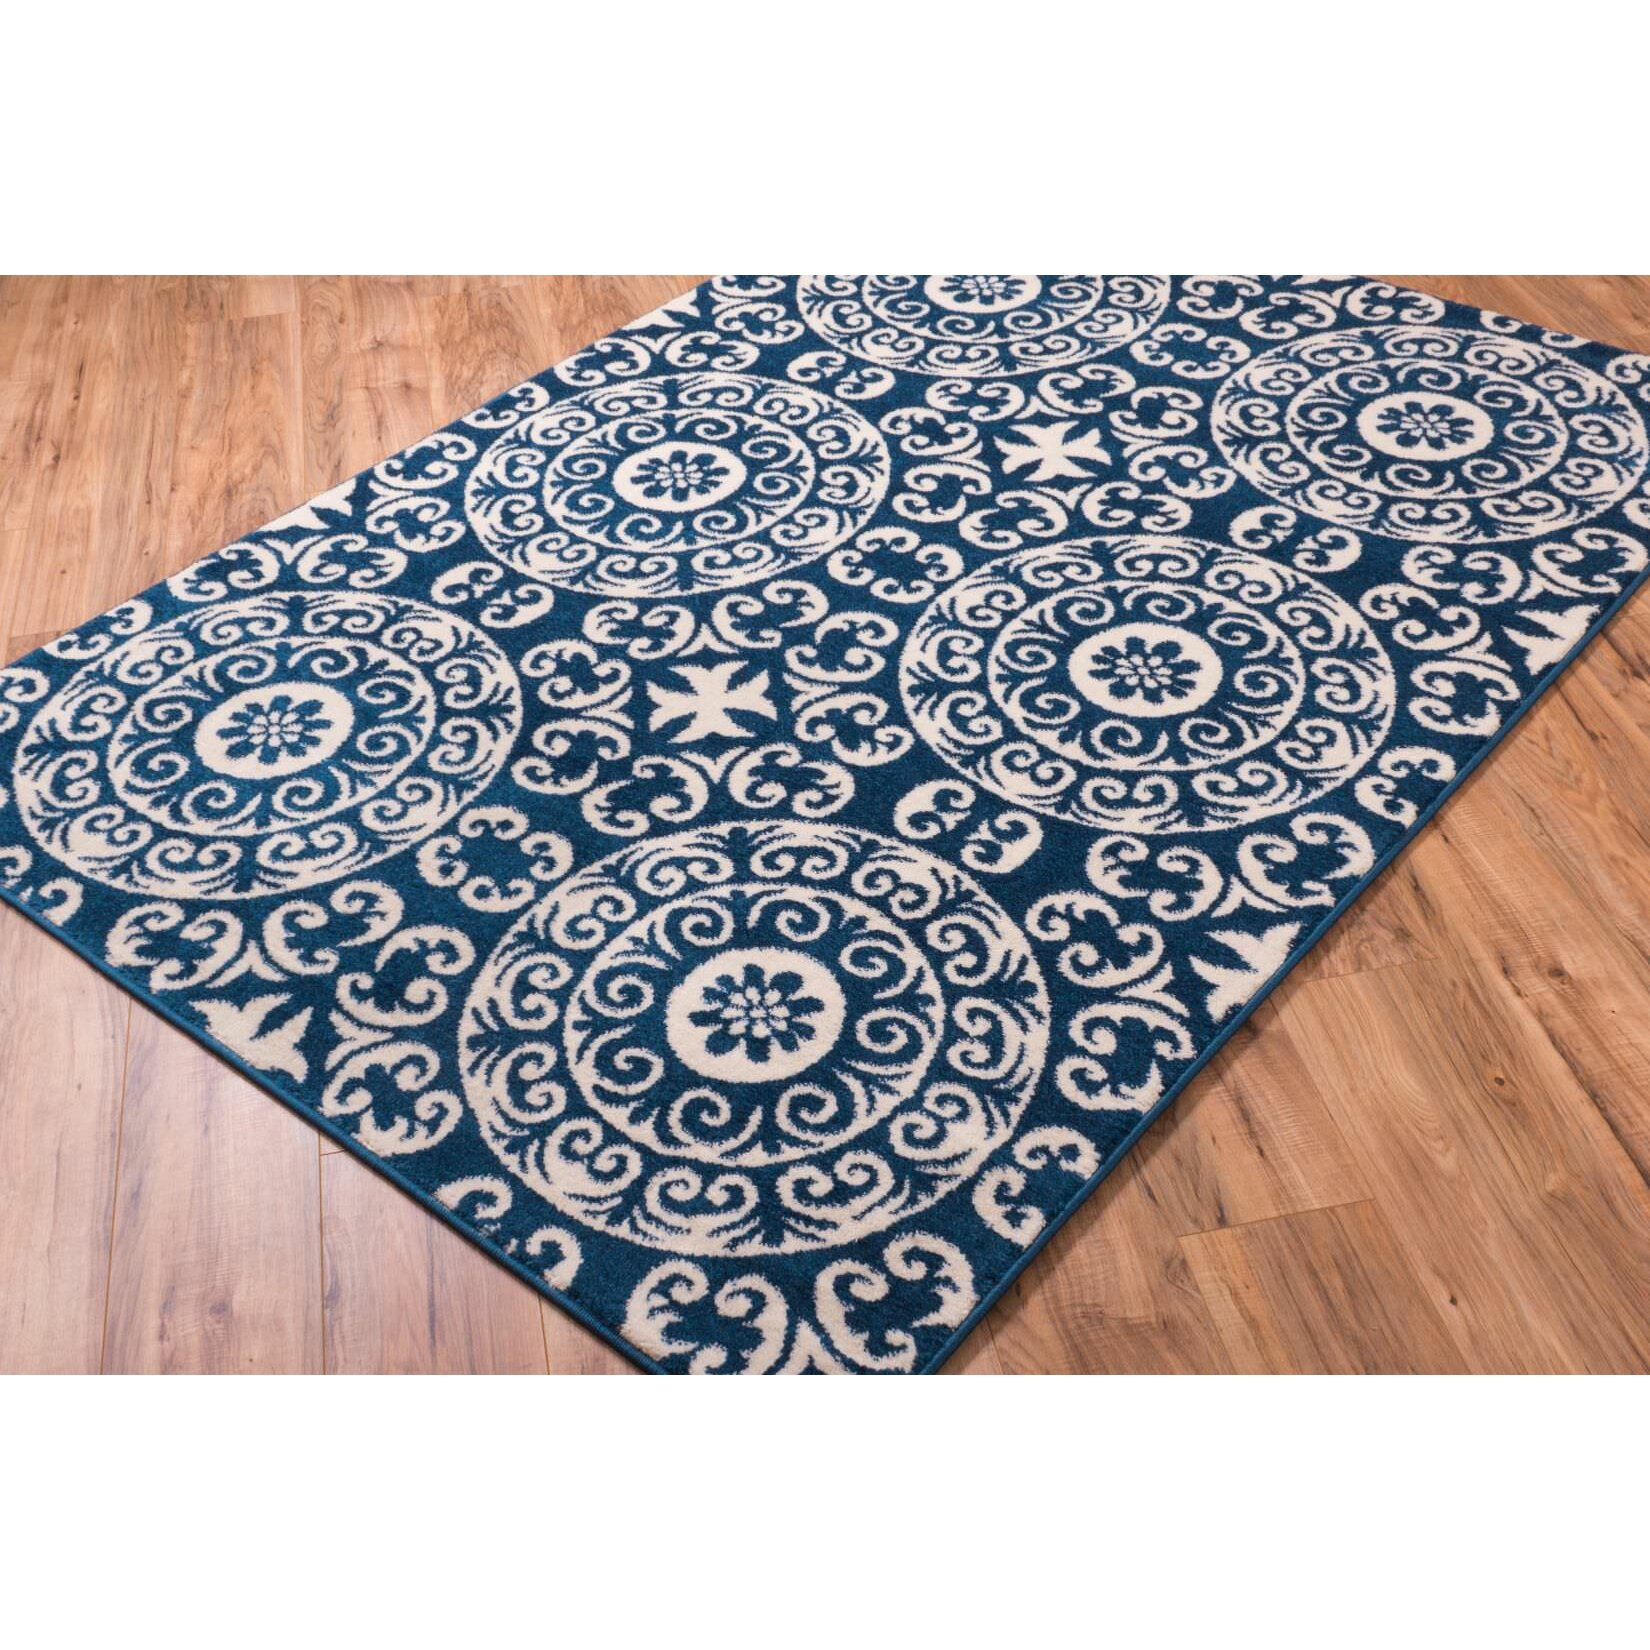 navy blue and white area rugs